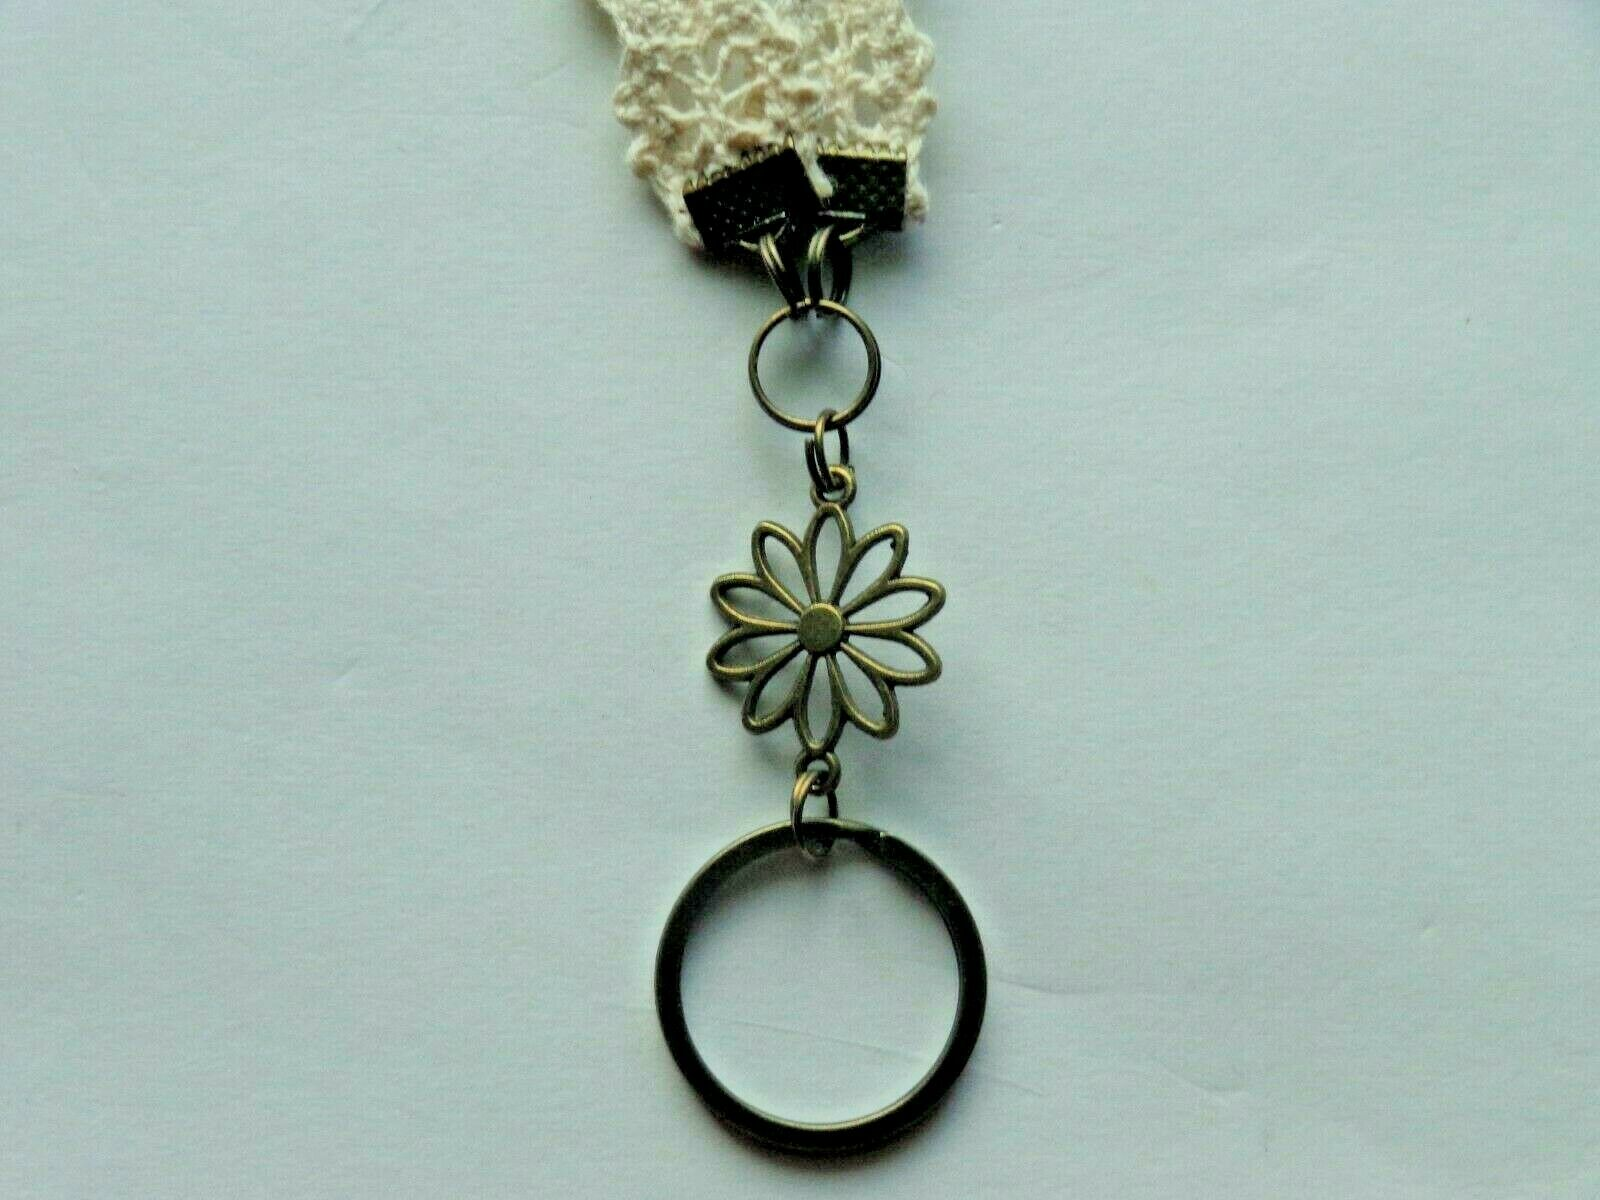 %100 COTTON OFF WHITE LACE LANYARD ID BADGE HOLDER NECKLACE COMFORT FOR YOU NECK